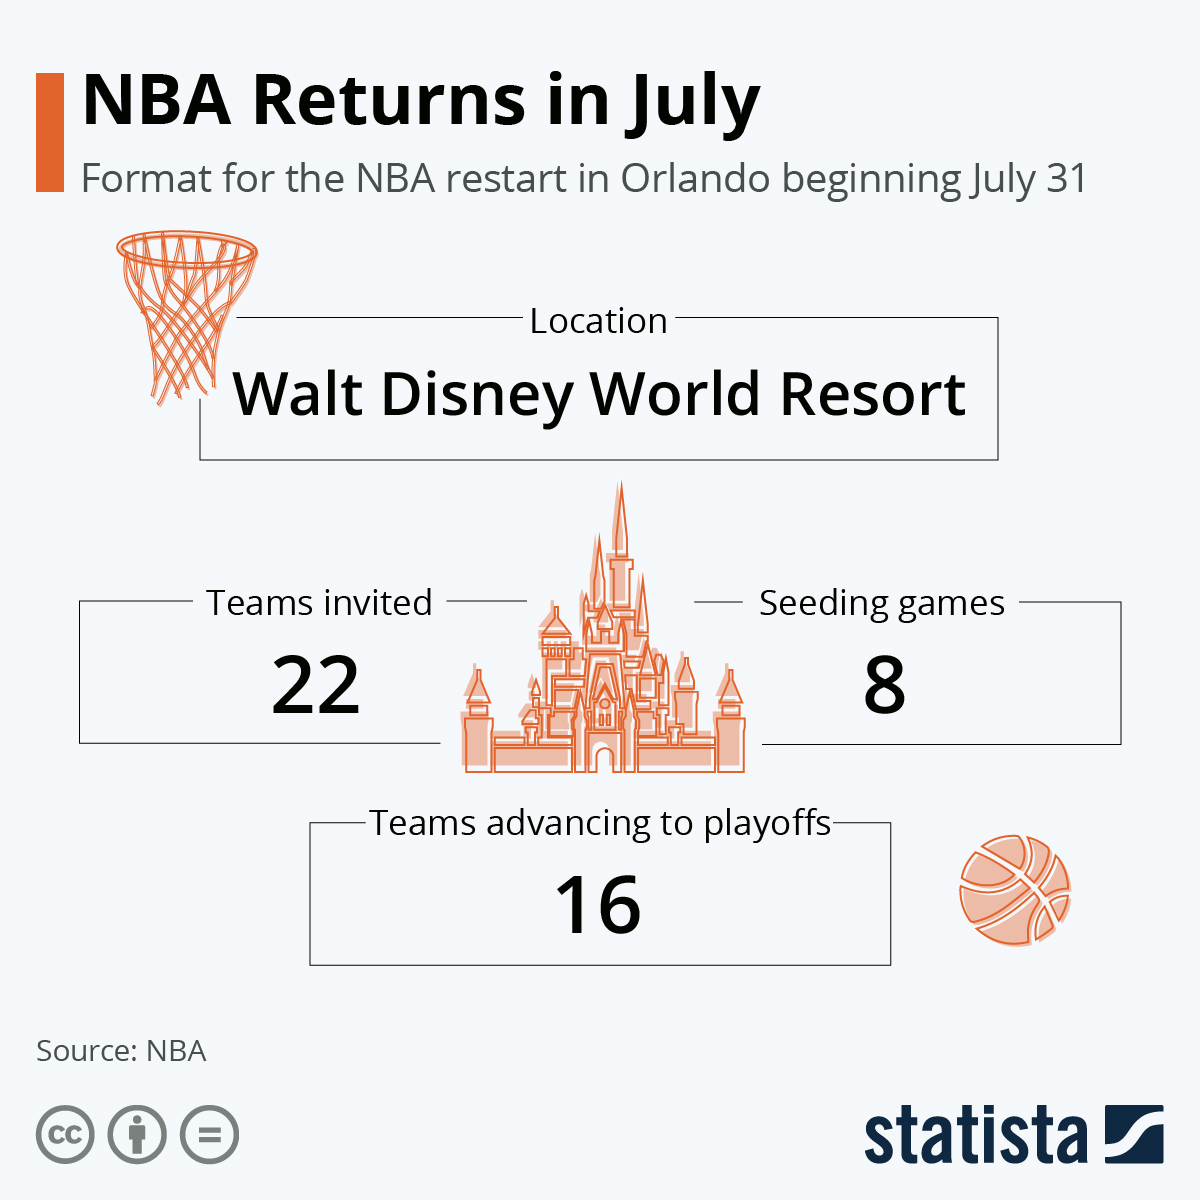 NBA to continue amidst COVID-19 #Infographic